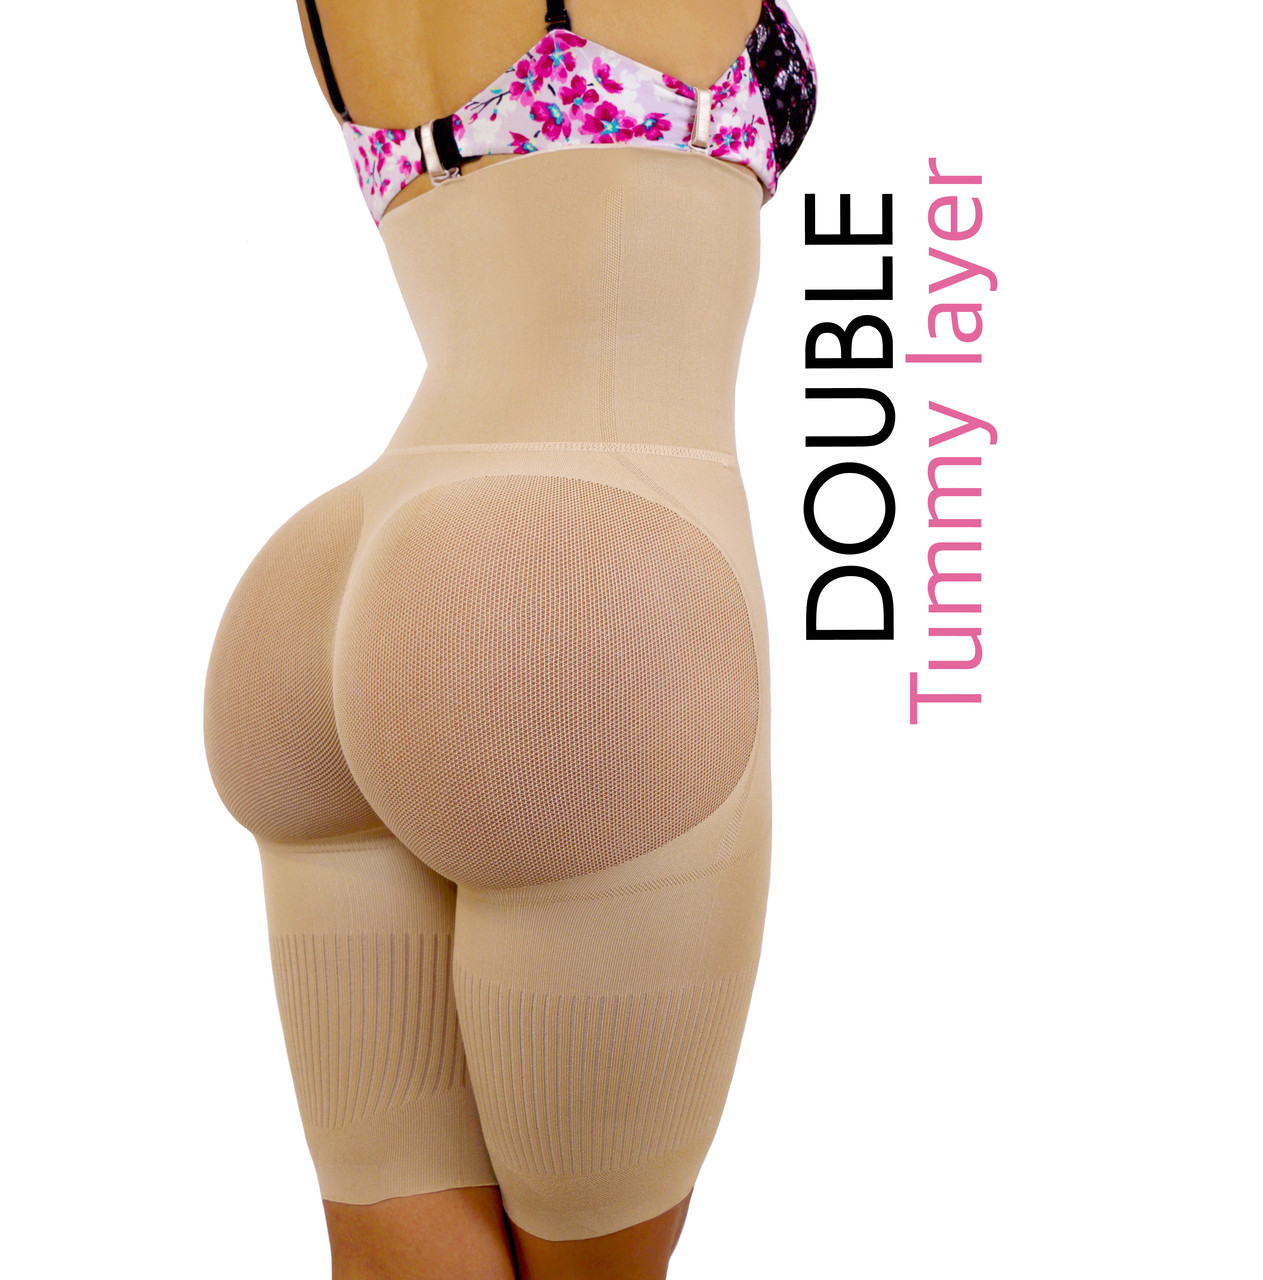 d6f2108b0 Happy Butt N°7 Double Tummy Layer - YAHAIRA INC